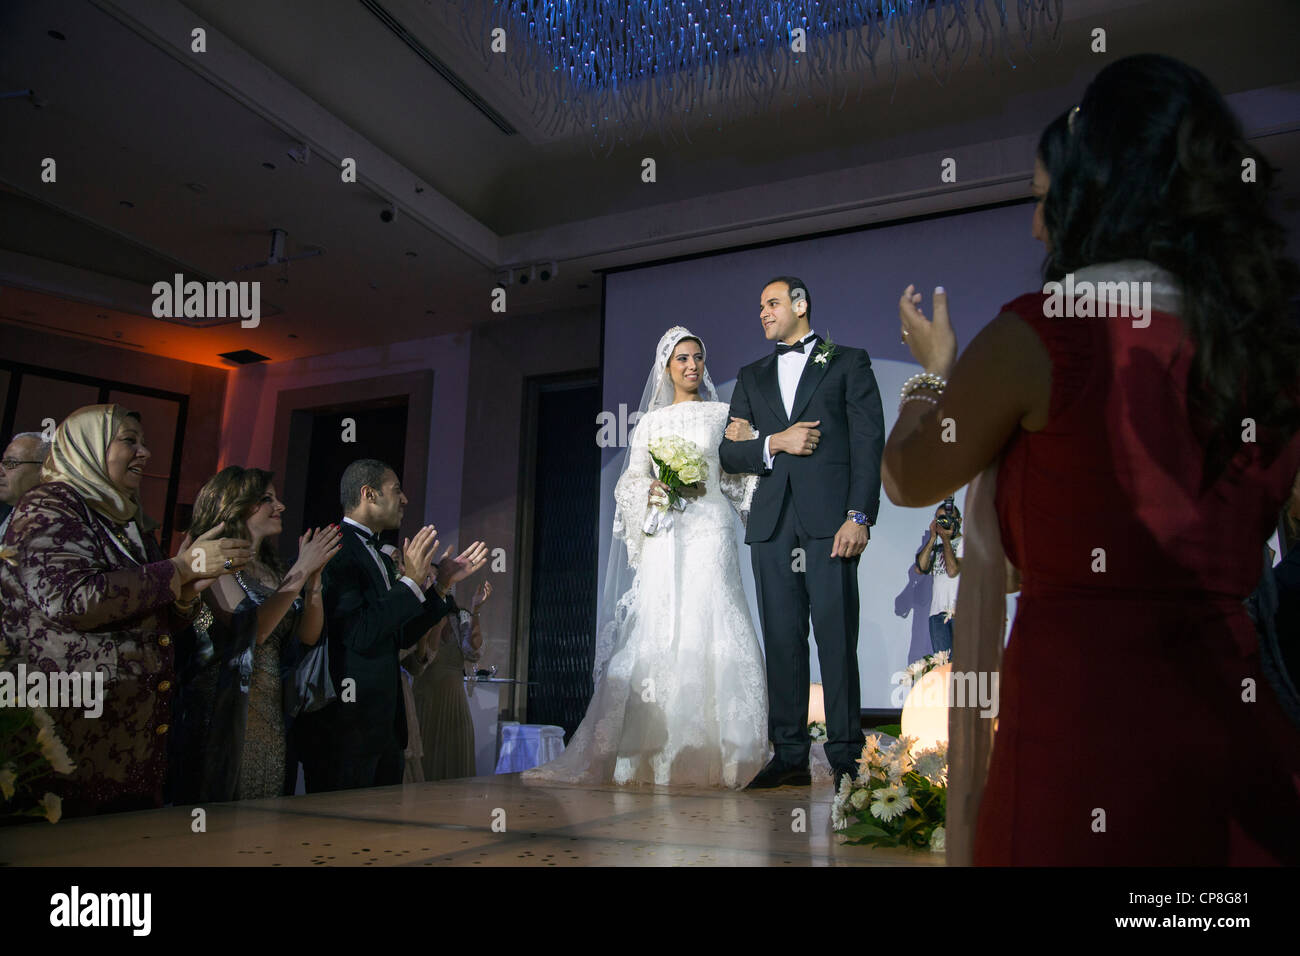 procession of the bride and groom at Egyptian wedding, Cairo, Egypt - Stock Image